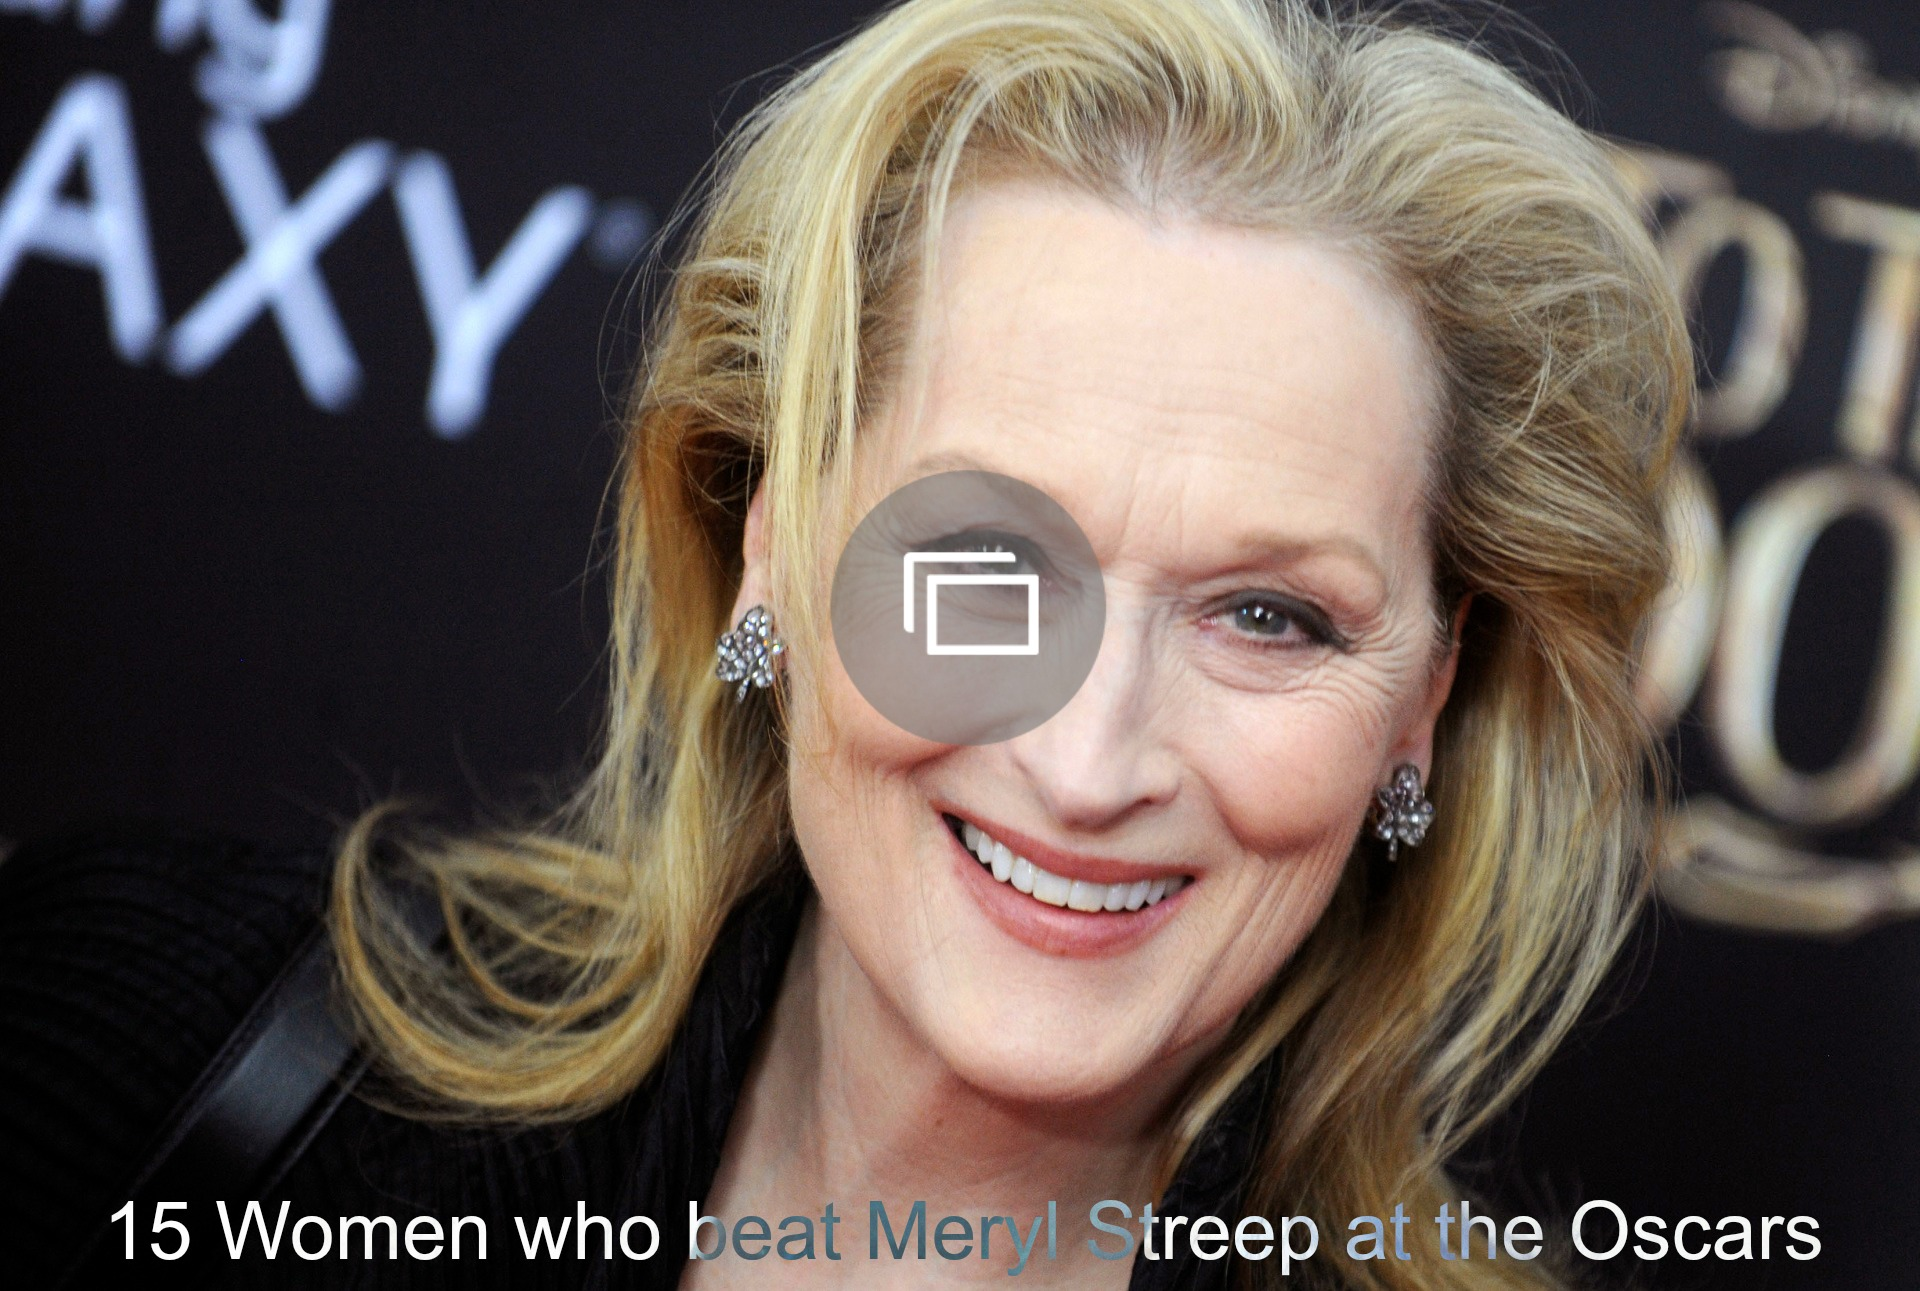 We can't wait to hear what Donald Trump has to say about Meryl Streep's impersonation of him